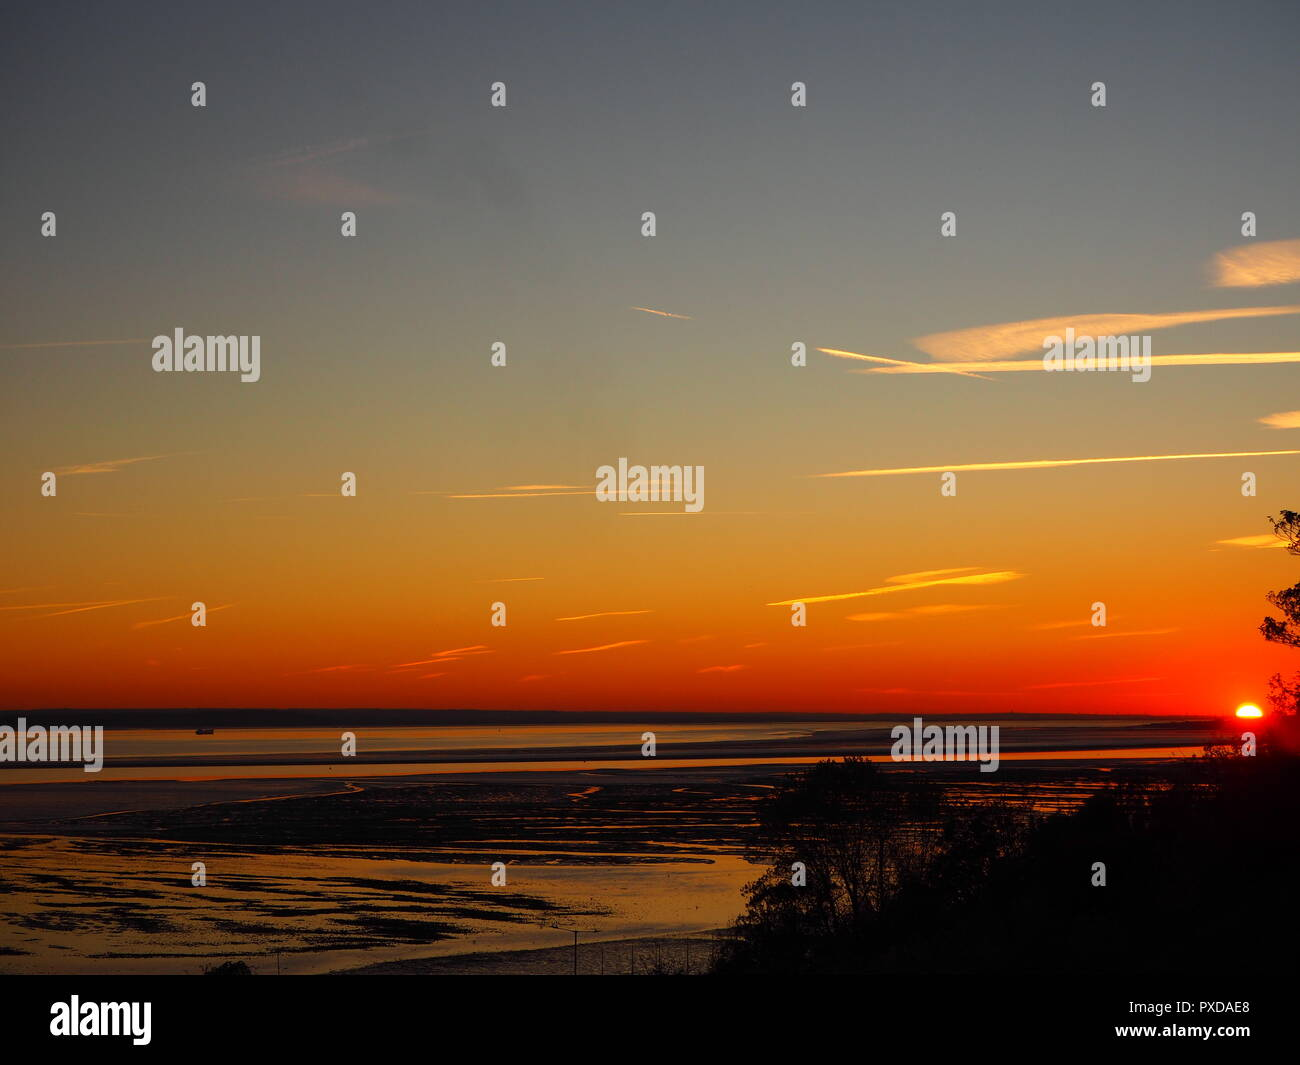 View of the setting sun over the Thames Estuary taken from the cliffs at Southend on sea, Essex, UK - Stock Image